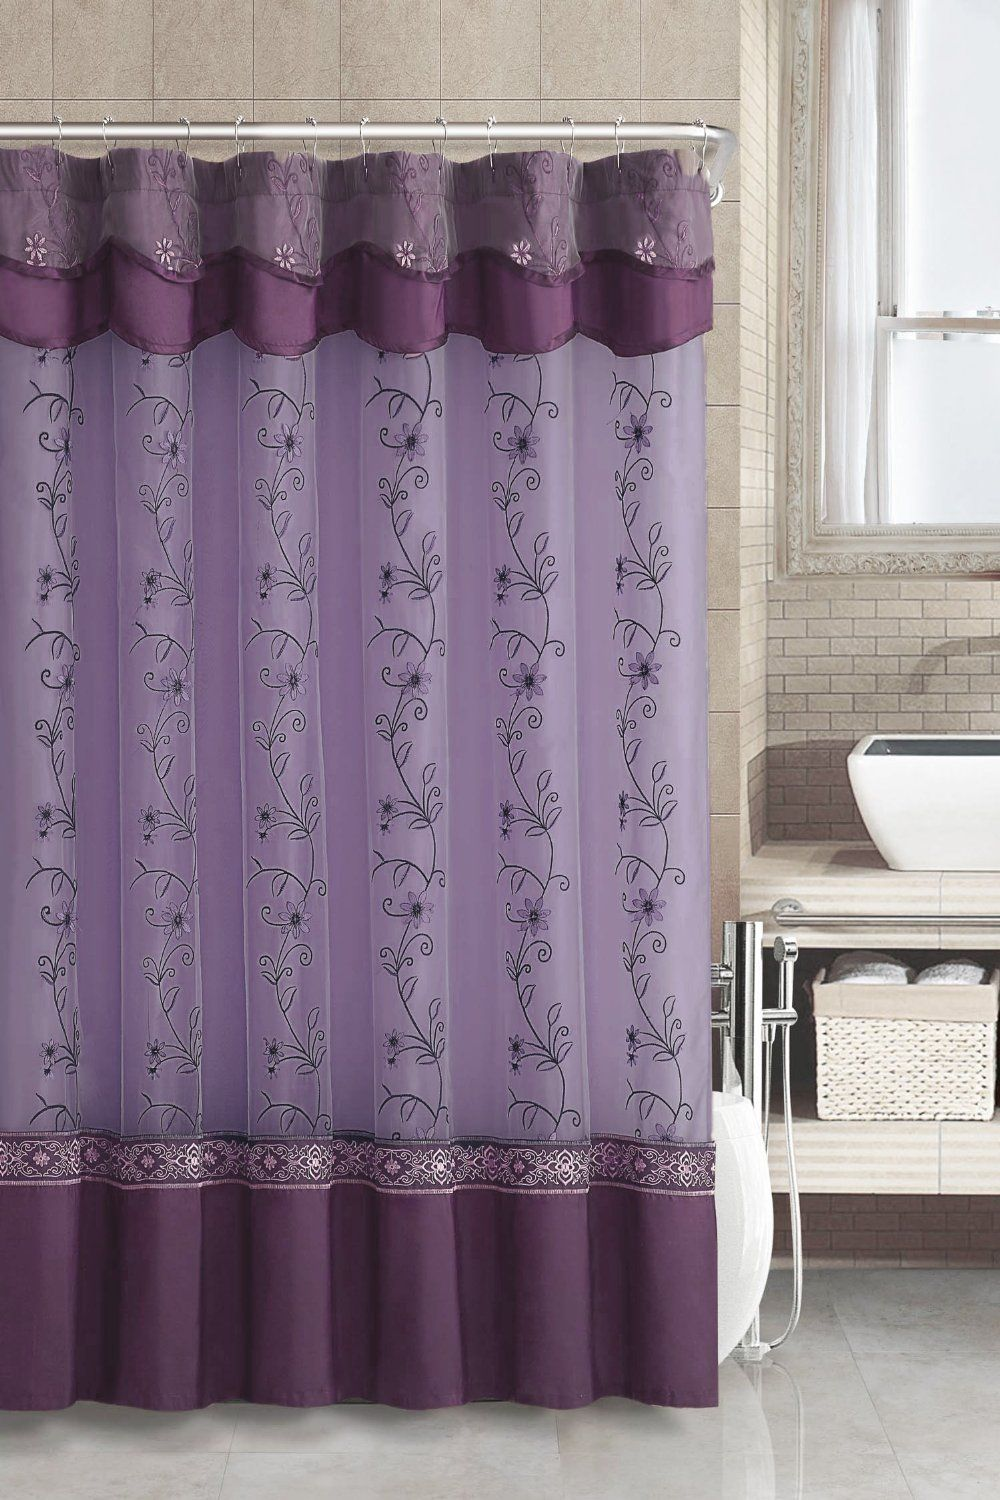 Amazon Com Two Layered Embroidered Fabric Shower Curtain With